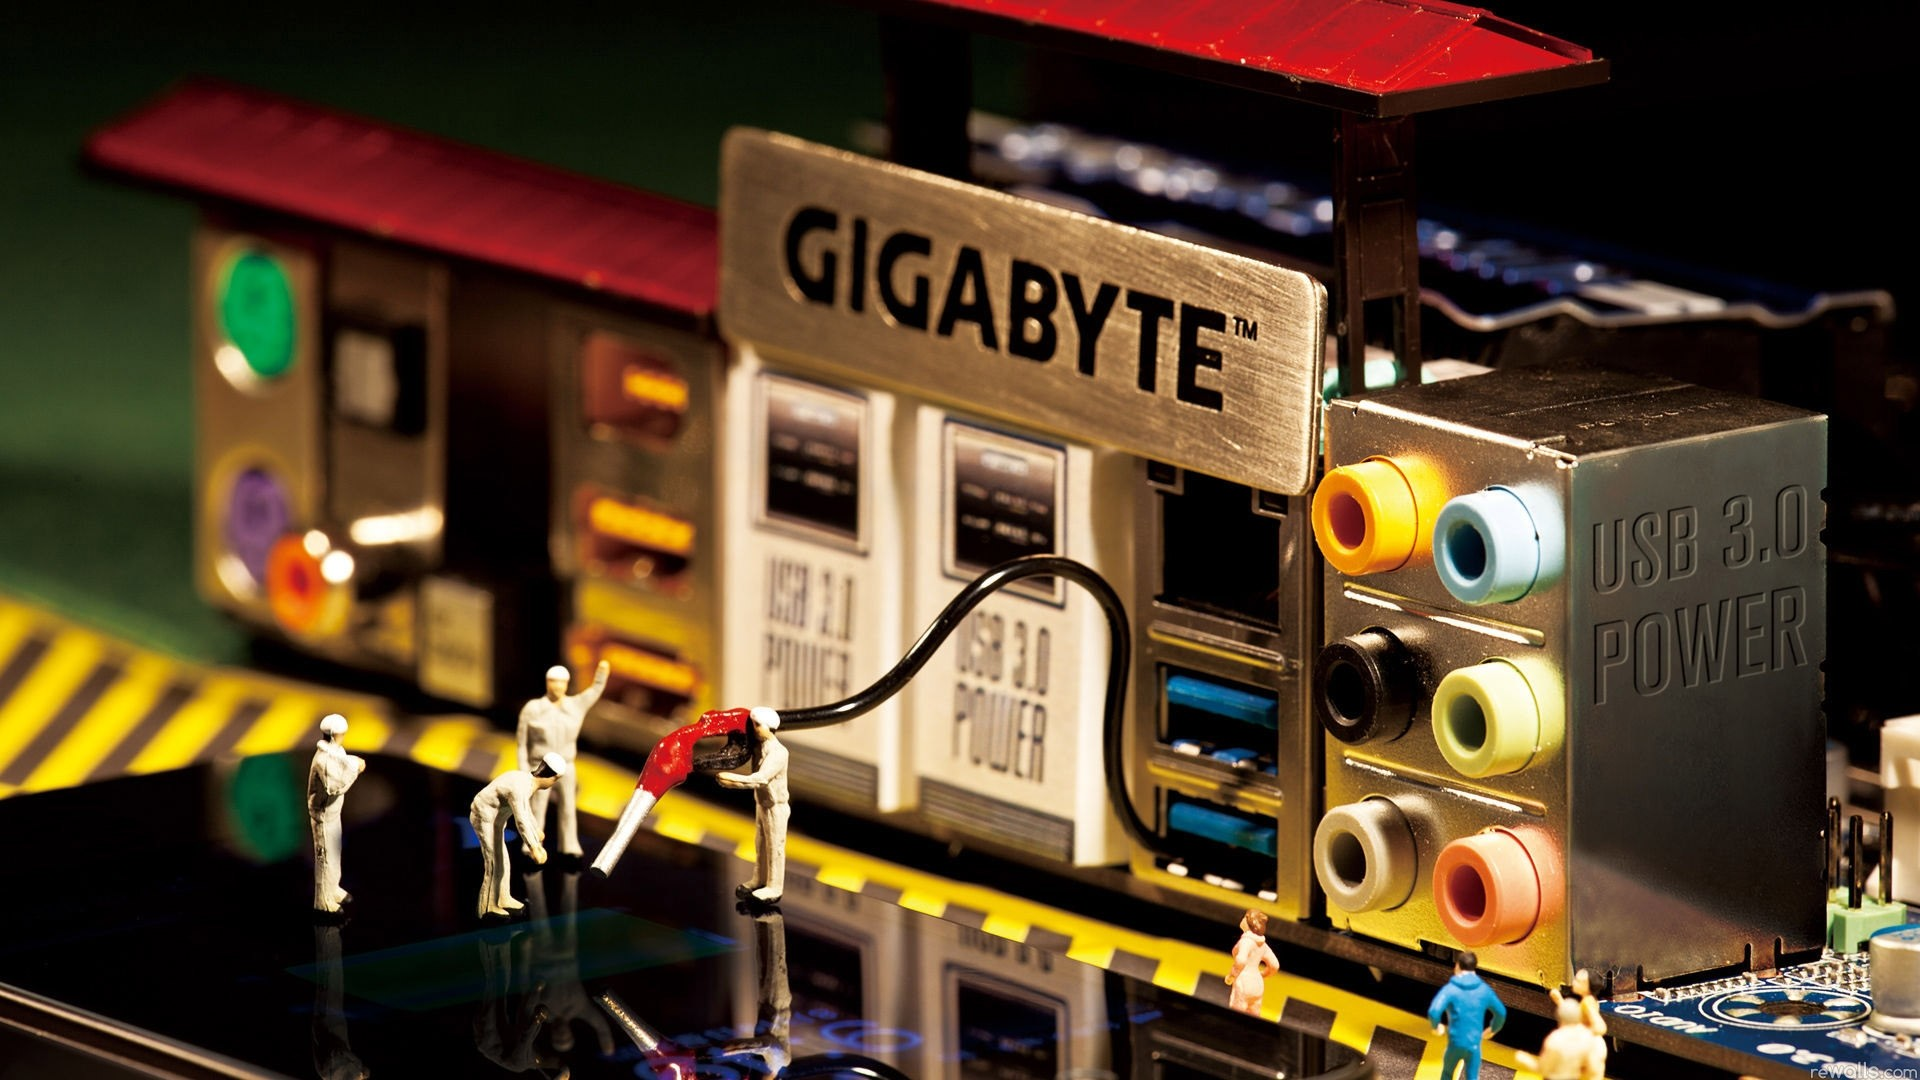 Res: 1920x1080, HD Wallpaper of Motherboard Gigabyte Wallpaper, Desktop Wallpaper  Motherboard Gigabyte Wallpaper